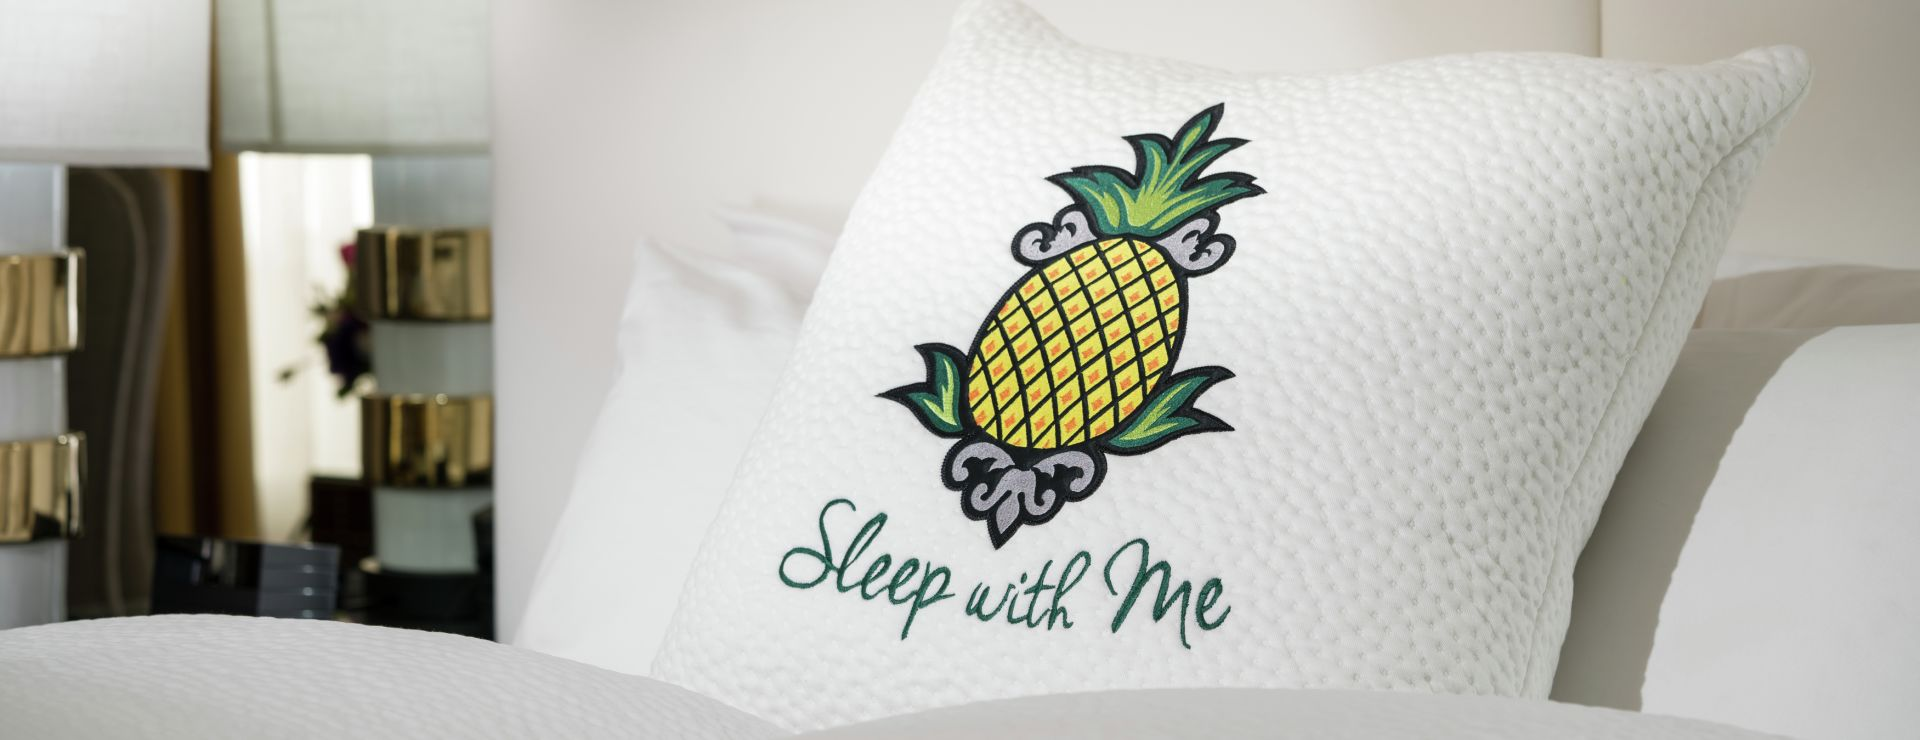 Sleep with me logoed pillow on guestroom bed